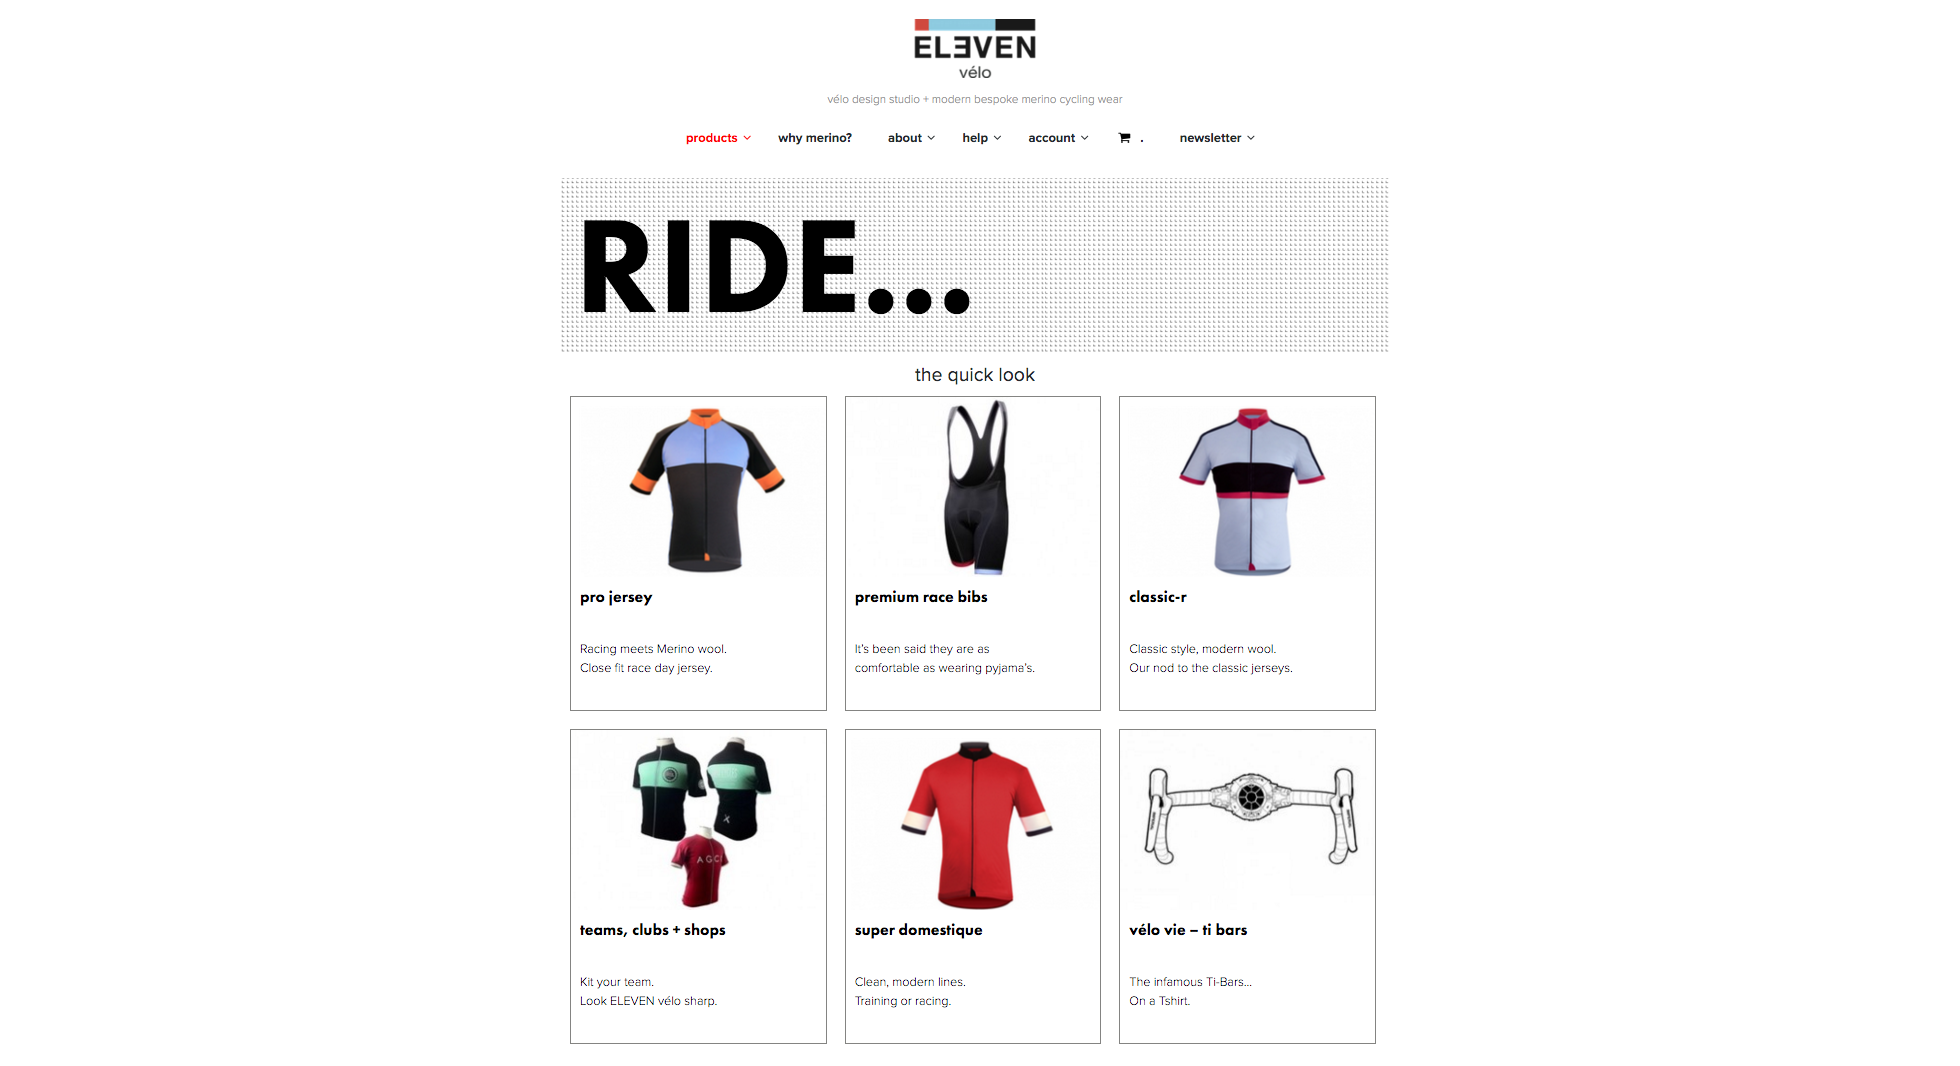 vélo design studio + modern bespoke merino cycling wear